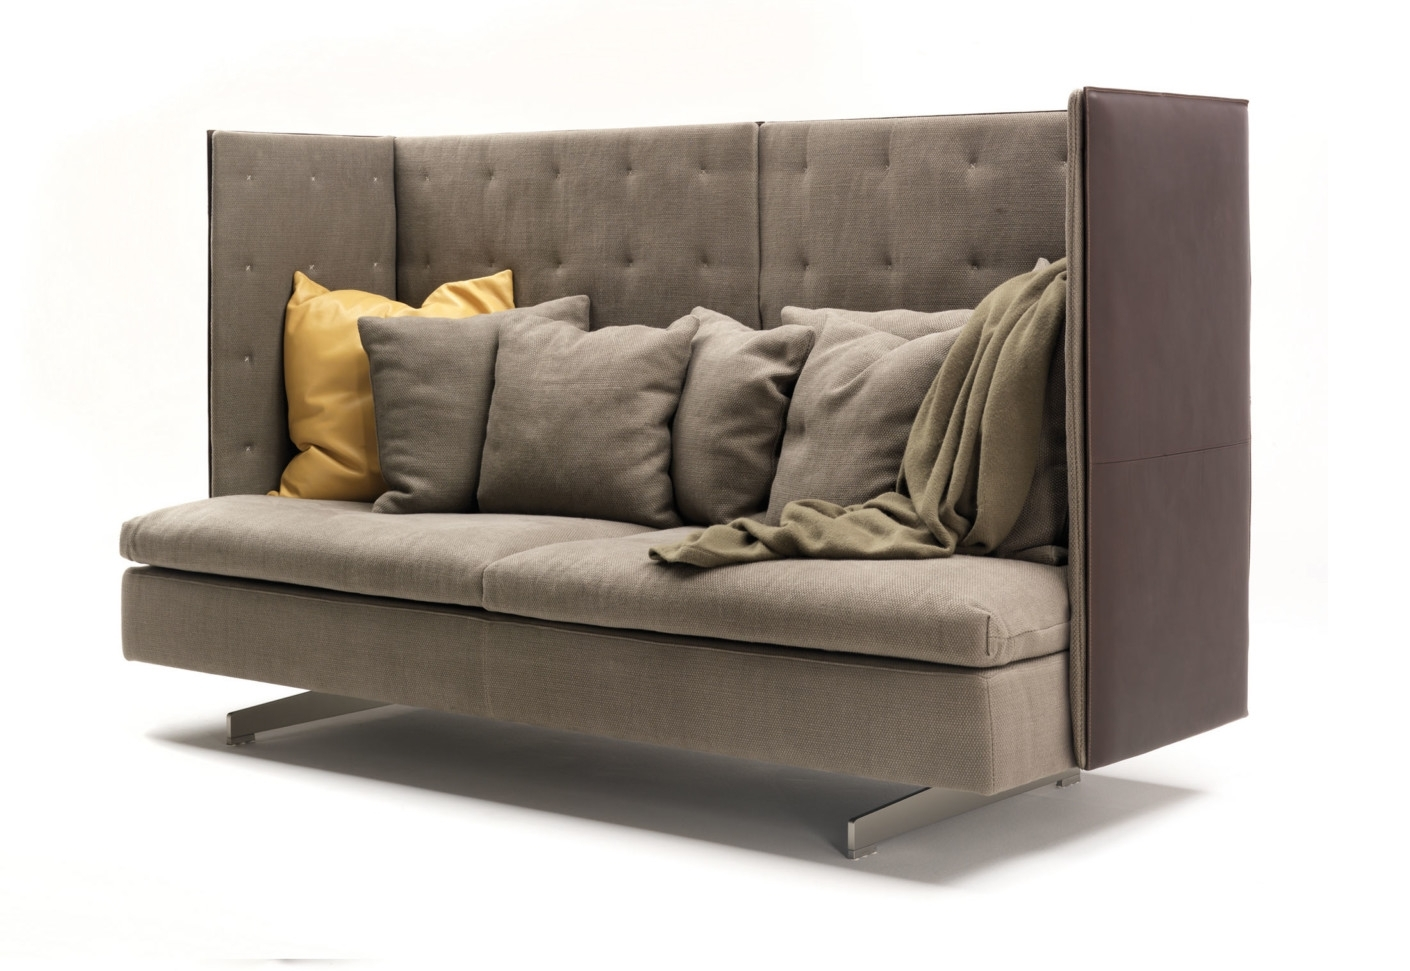 High Back Sectional Sofas – It Is Better To Opt For Leather Or Fabric? Pertaining To High Point Nc Sectional Sofas (Image 7 of 10)